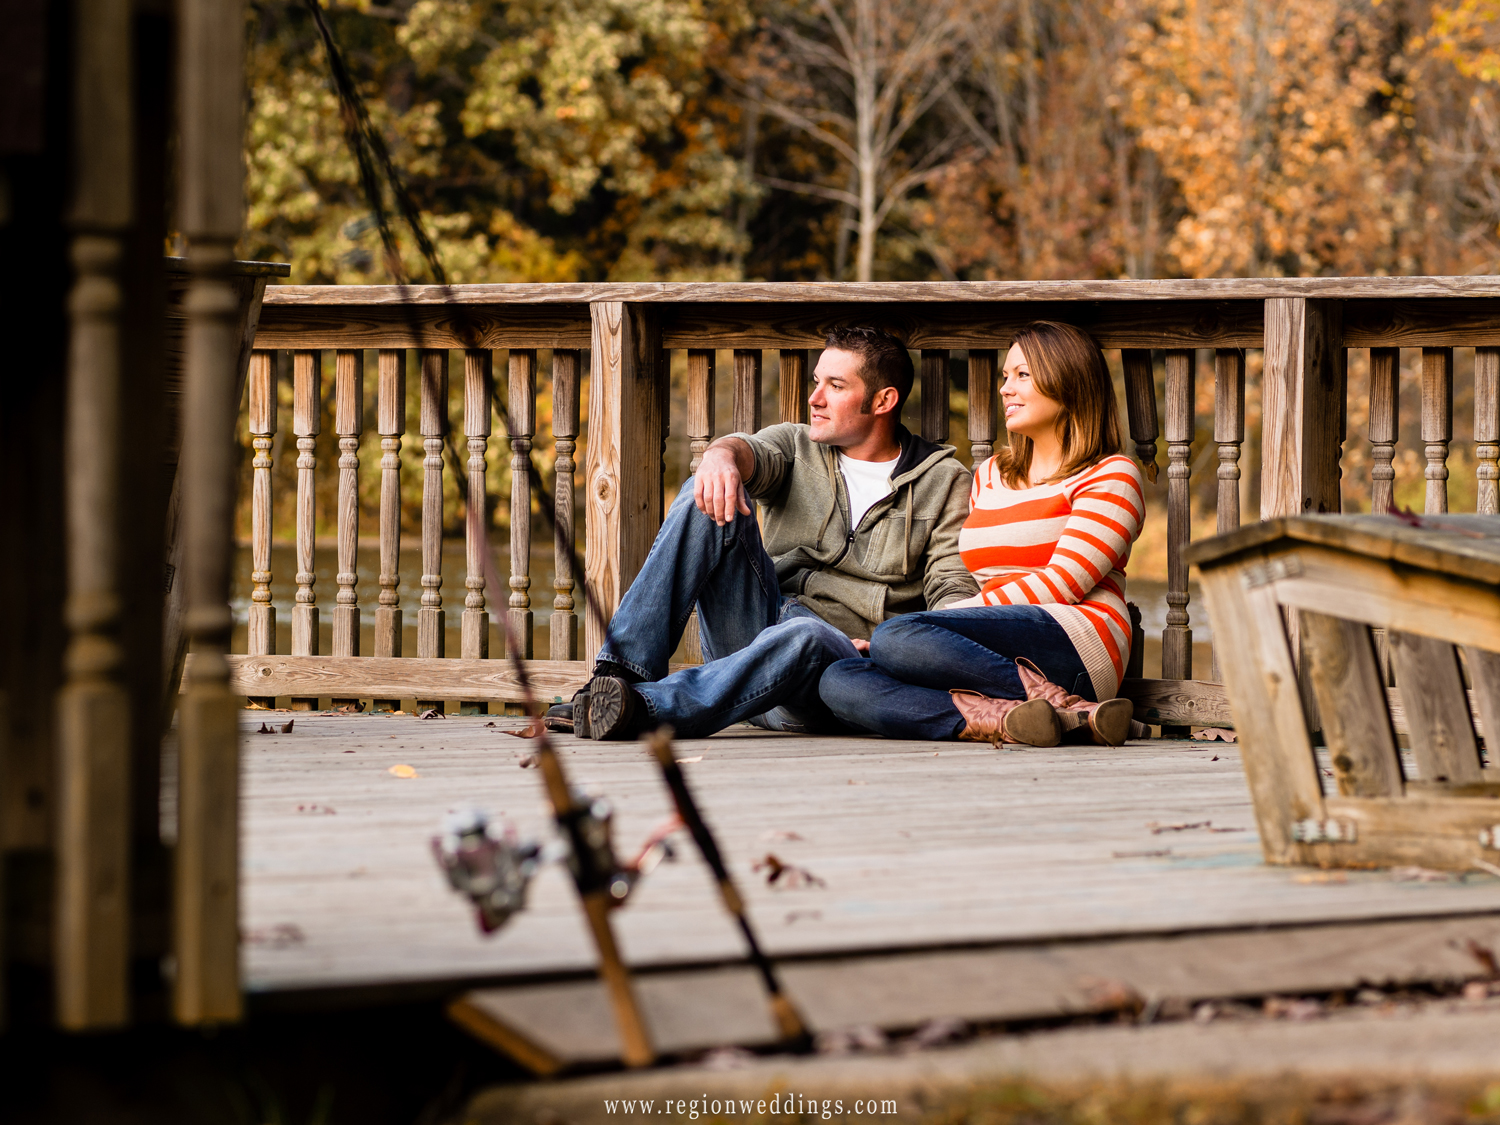 A couple relaxes on a lake pier with their fishing poles in the foreground.